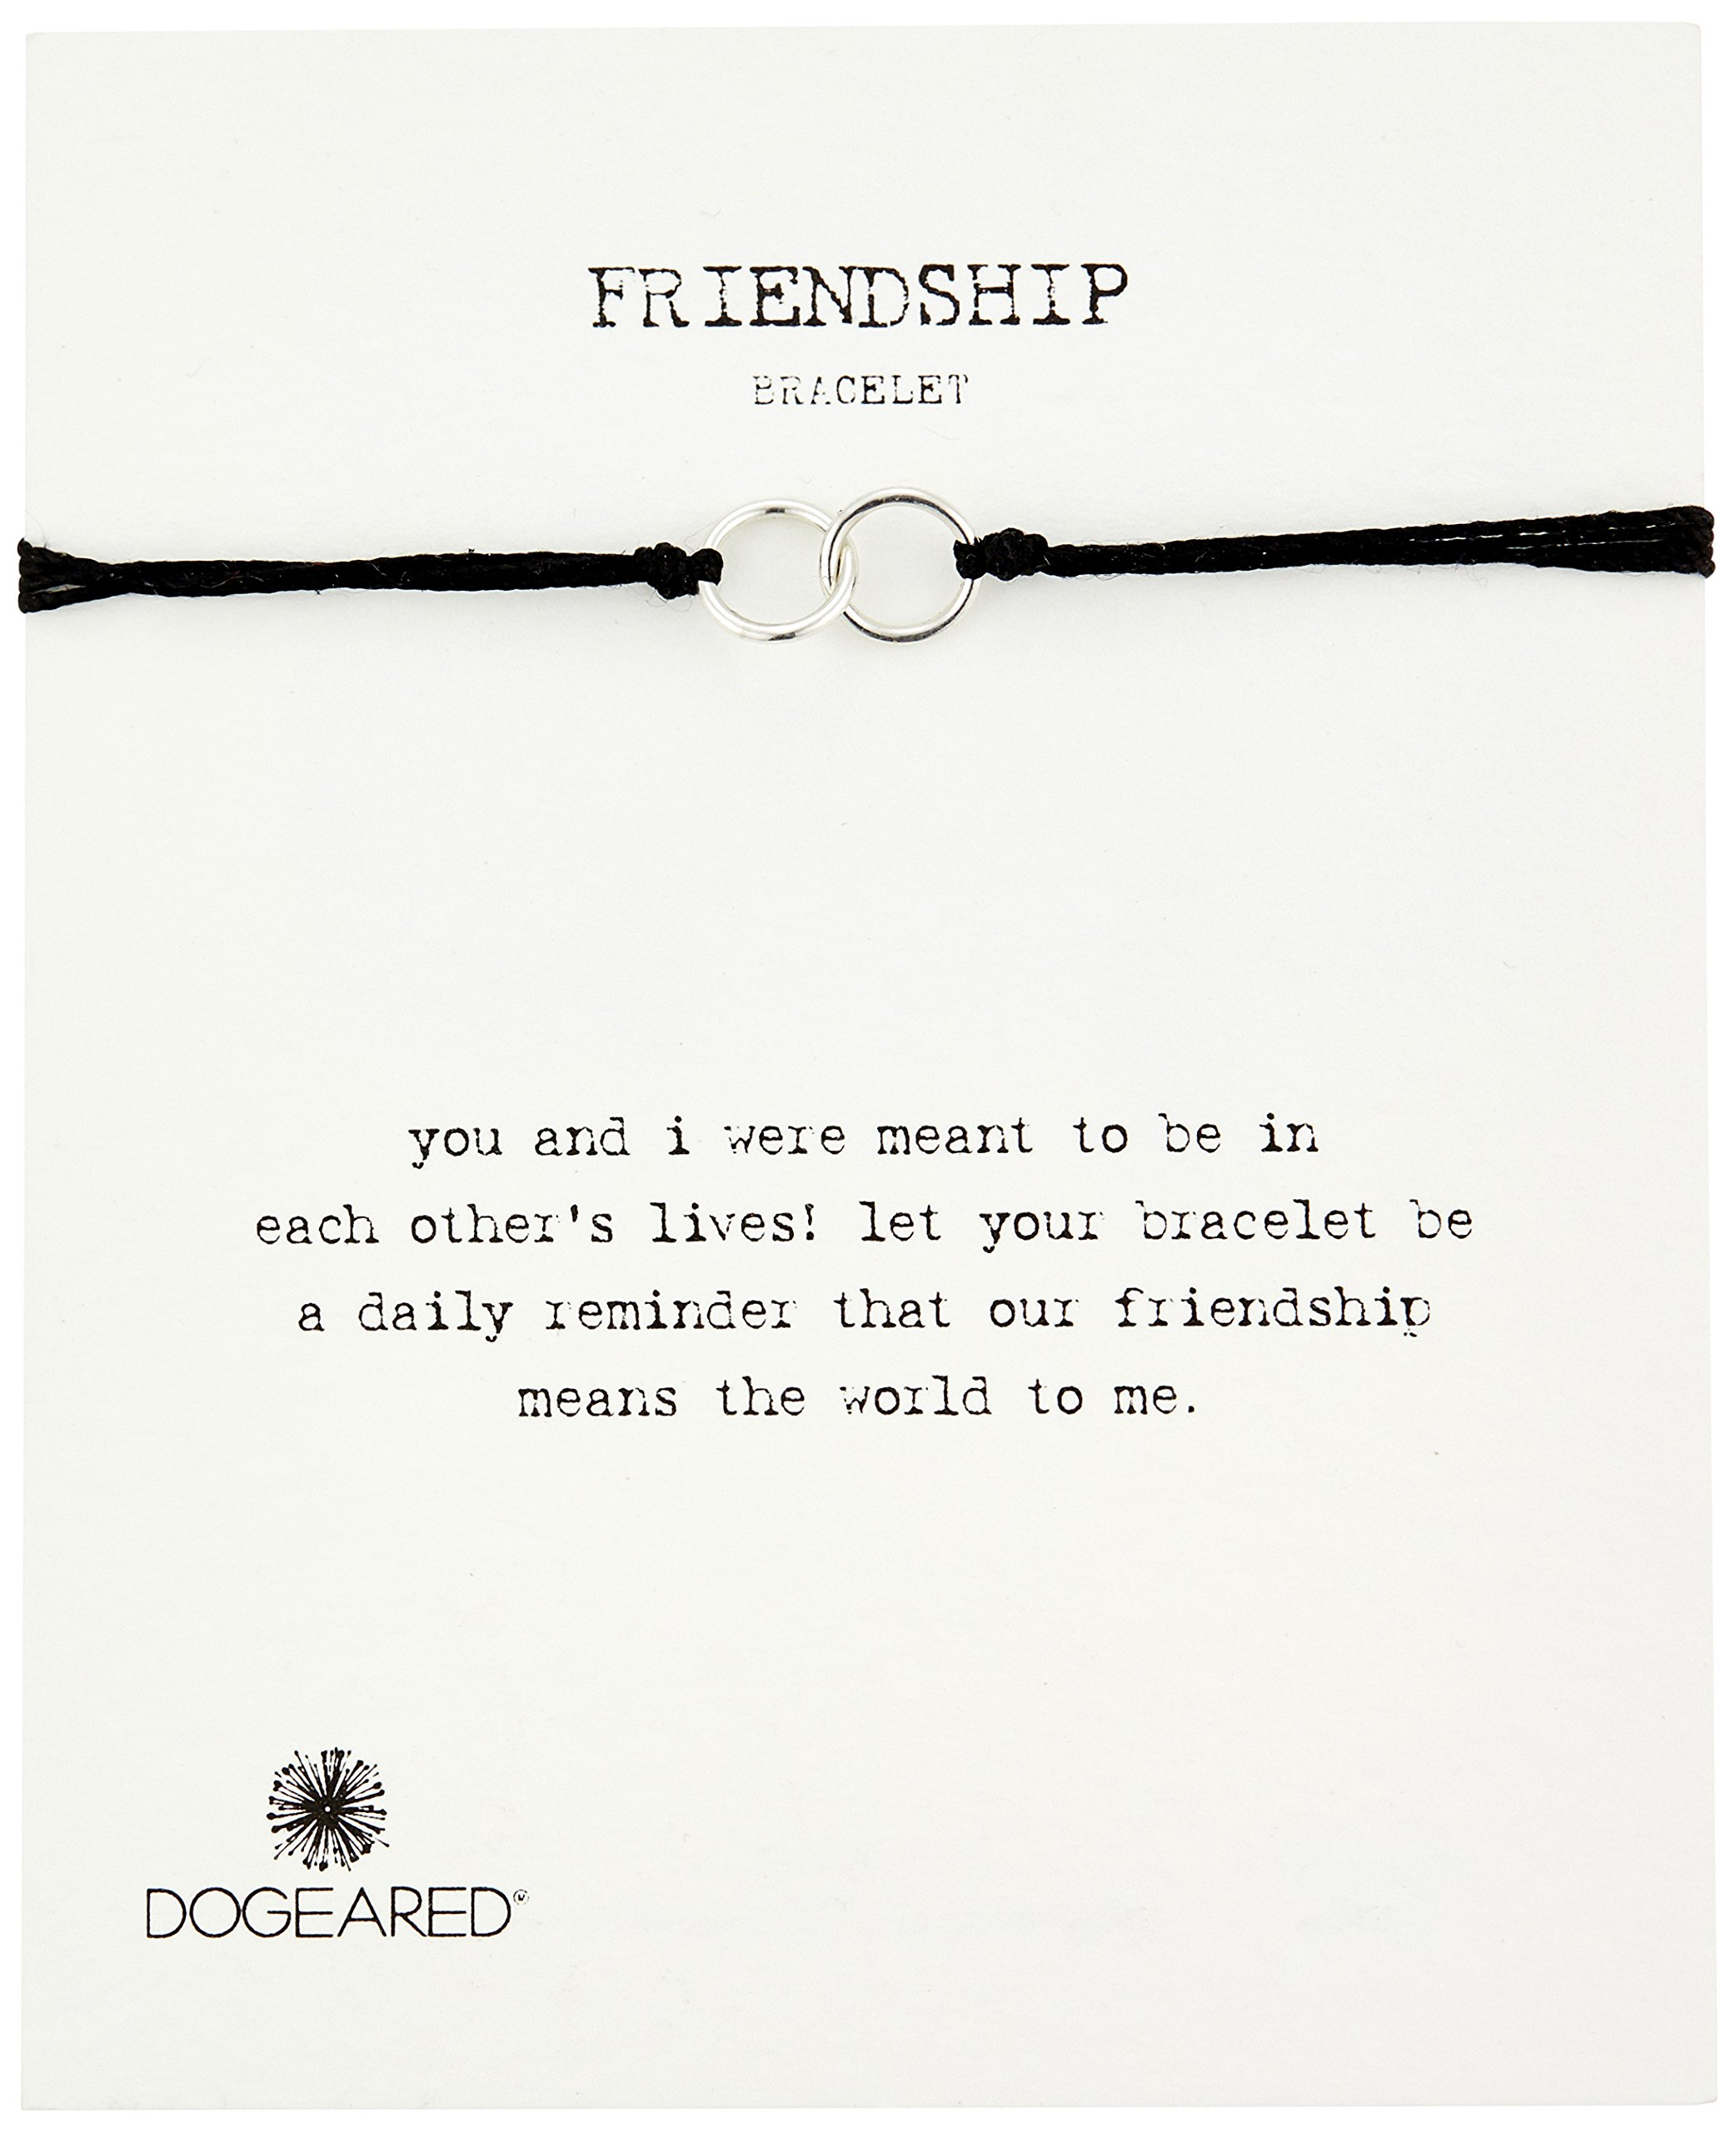 Dogeared Modern Wrist Friendship Double-Linked Rings Black with Adjustable Bead Closure Sterling Silver Bracelet